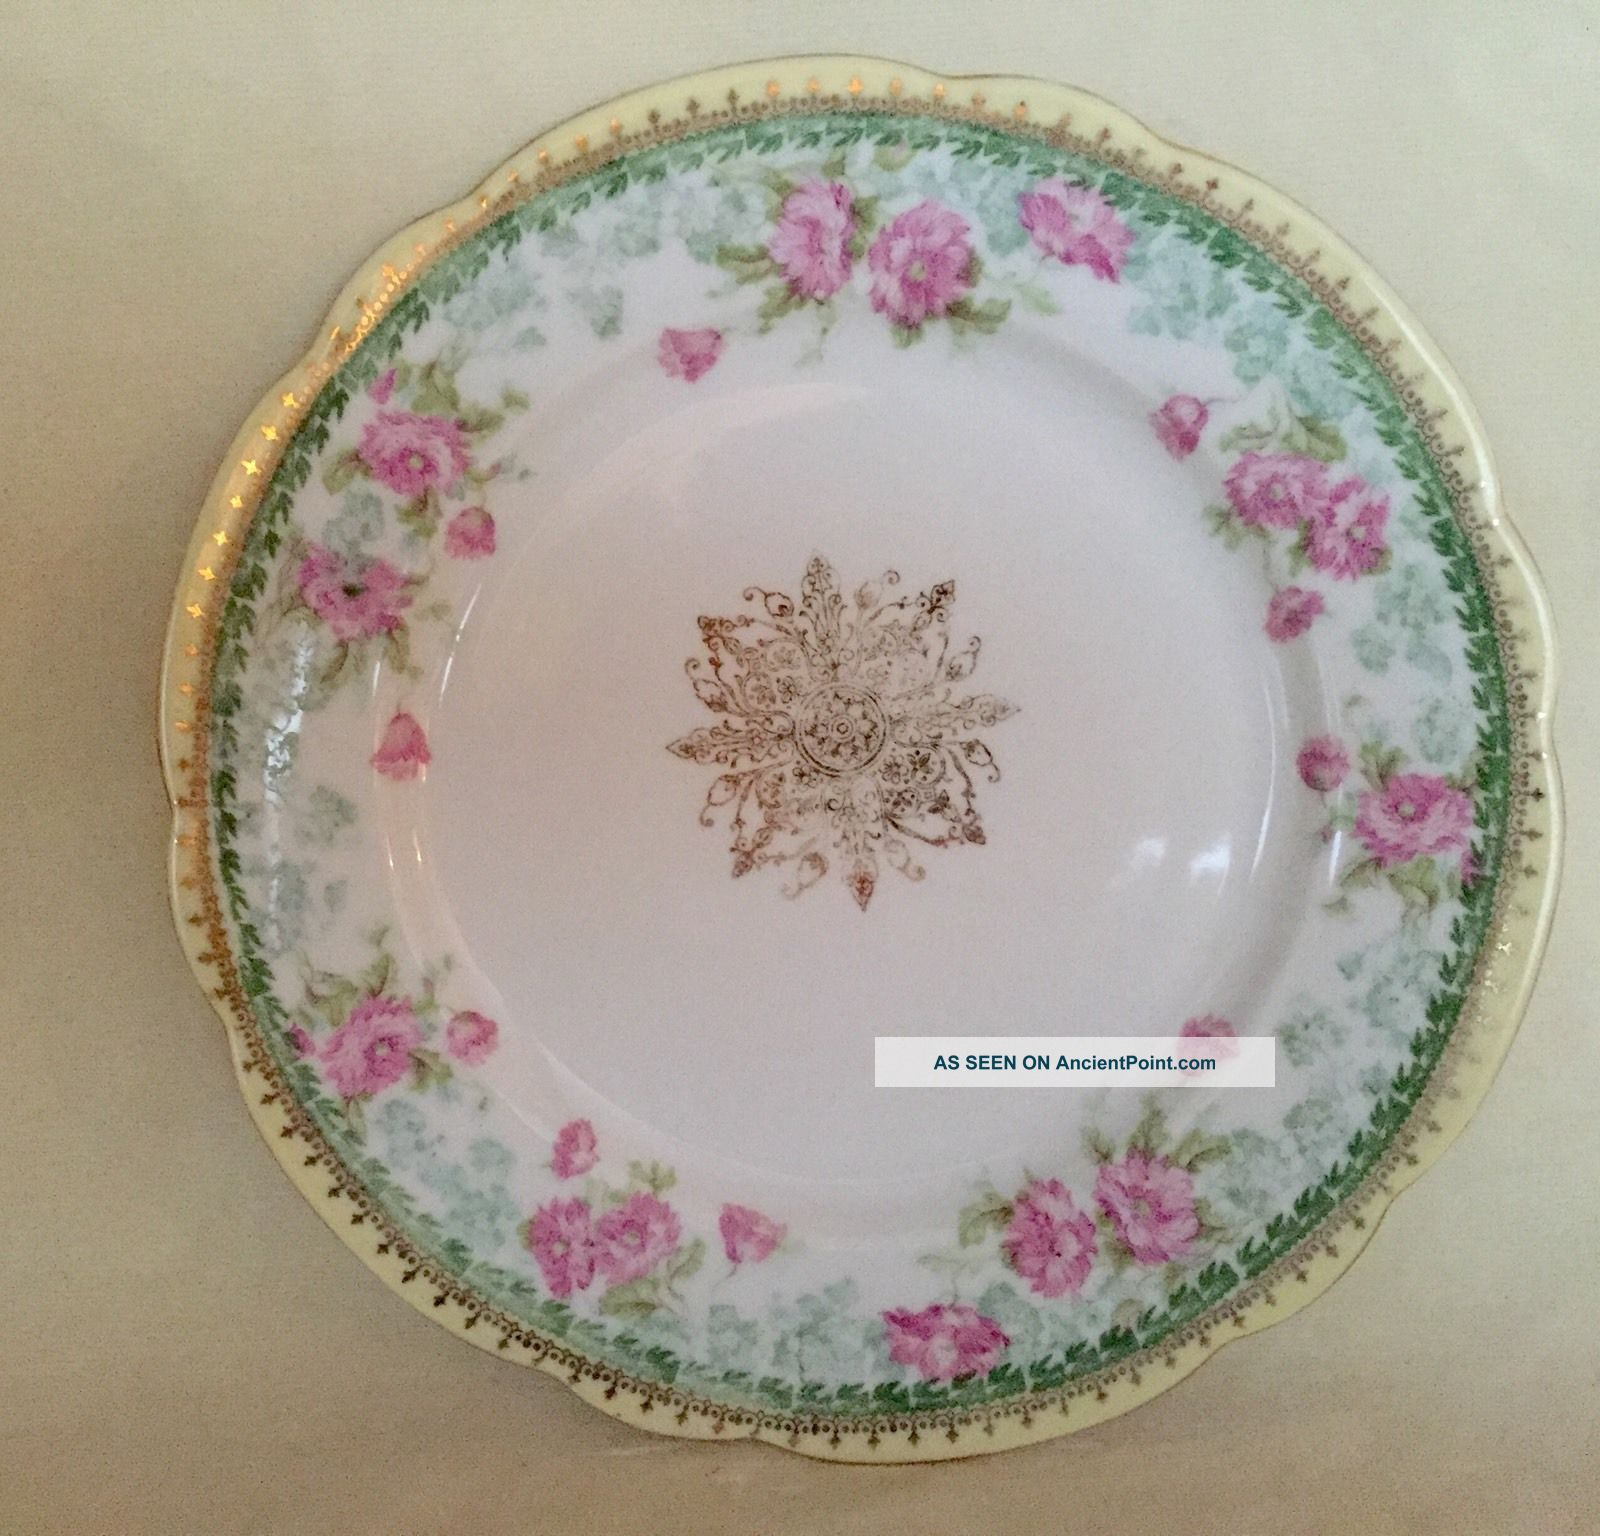 Antique Bawo & Dotter Imperial Austria Porcelain Plate Hand Painted Flowers Plates & Chargers photo